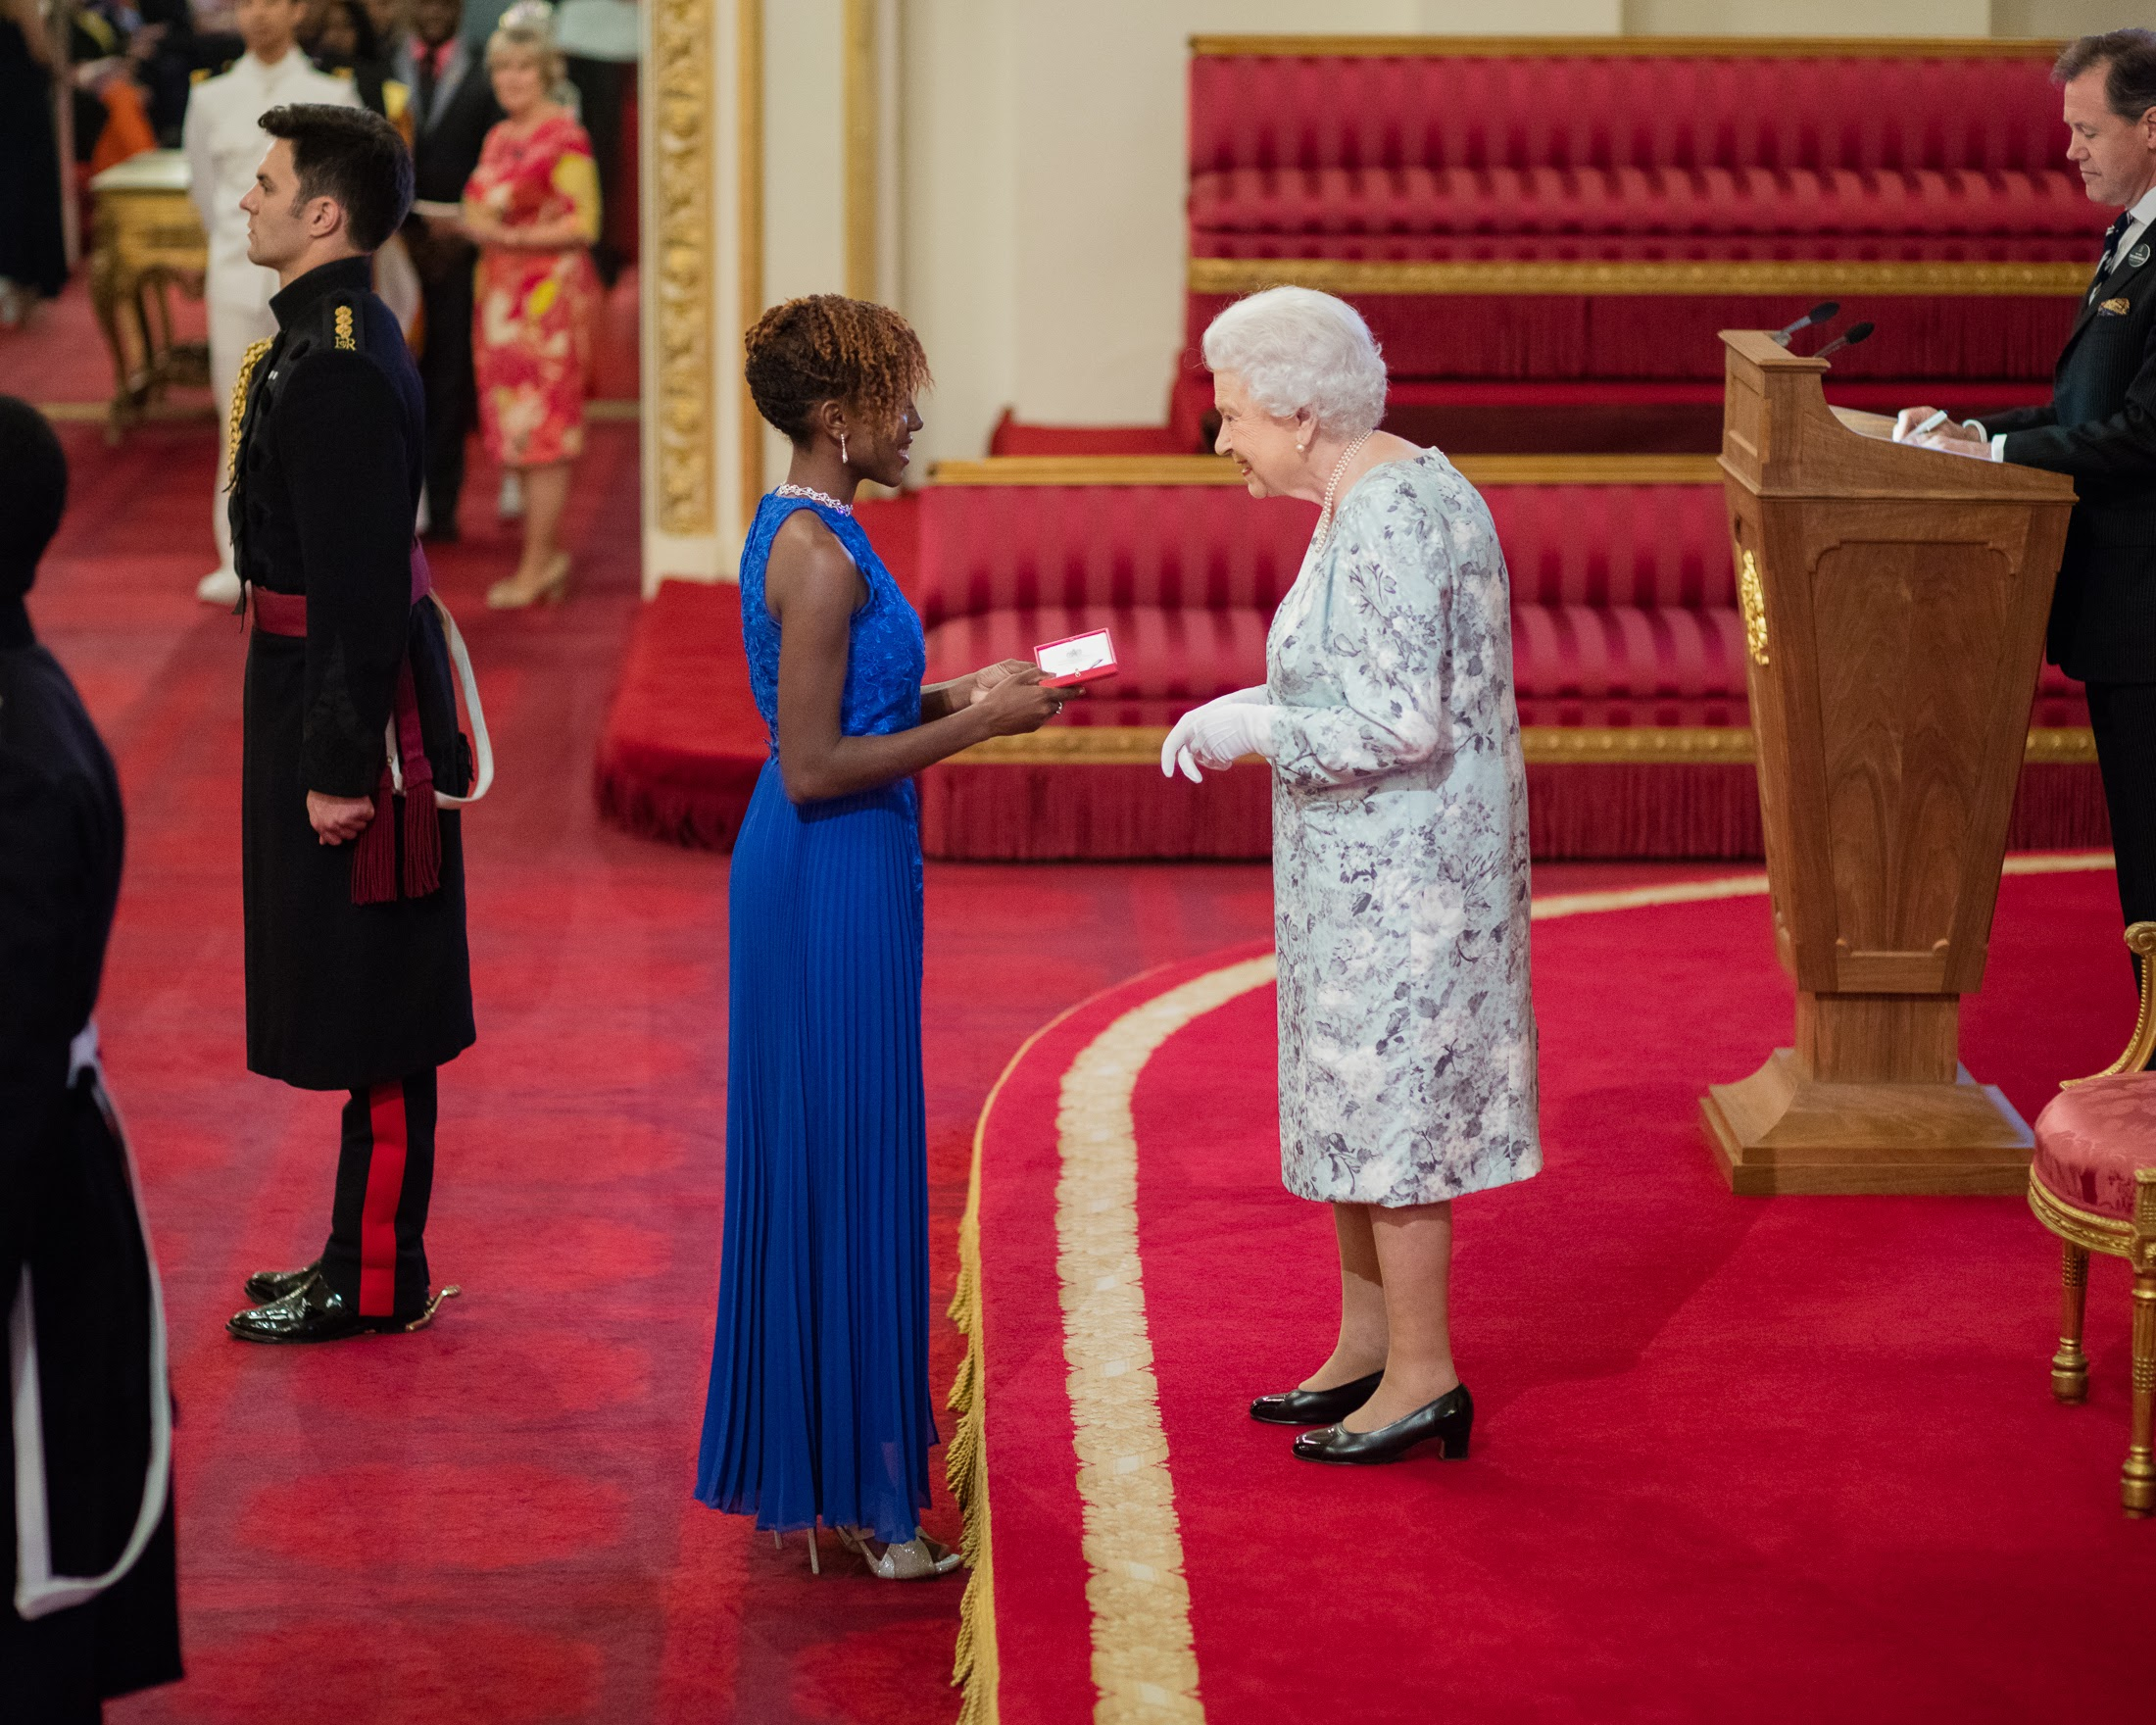 Jamila Sealy 2016 Queen's Young Leader from Barbados